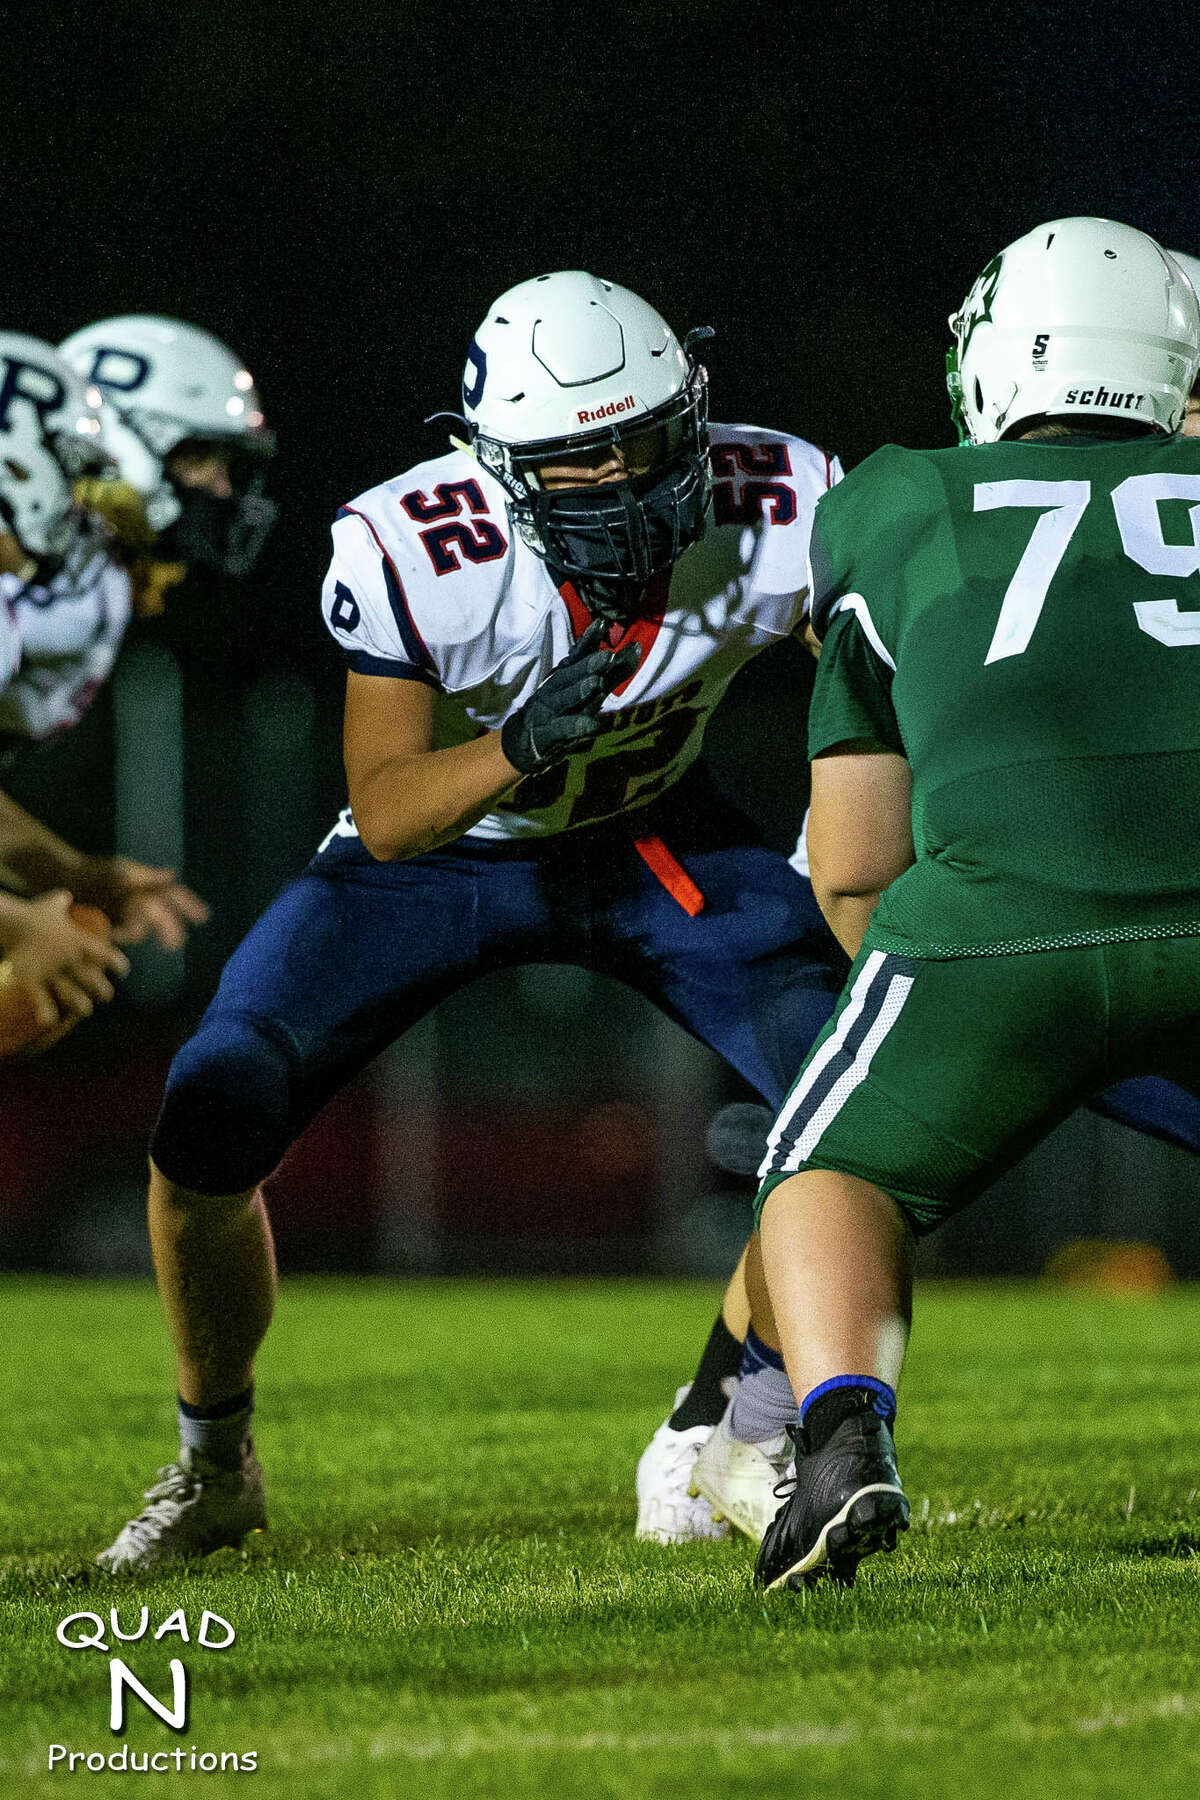 The USA Patriots shutout the visiting Brown City Green Devils, 53-0, on Friday night.